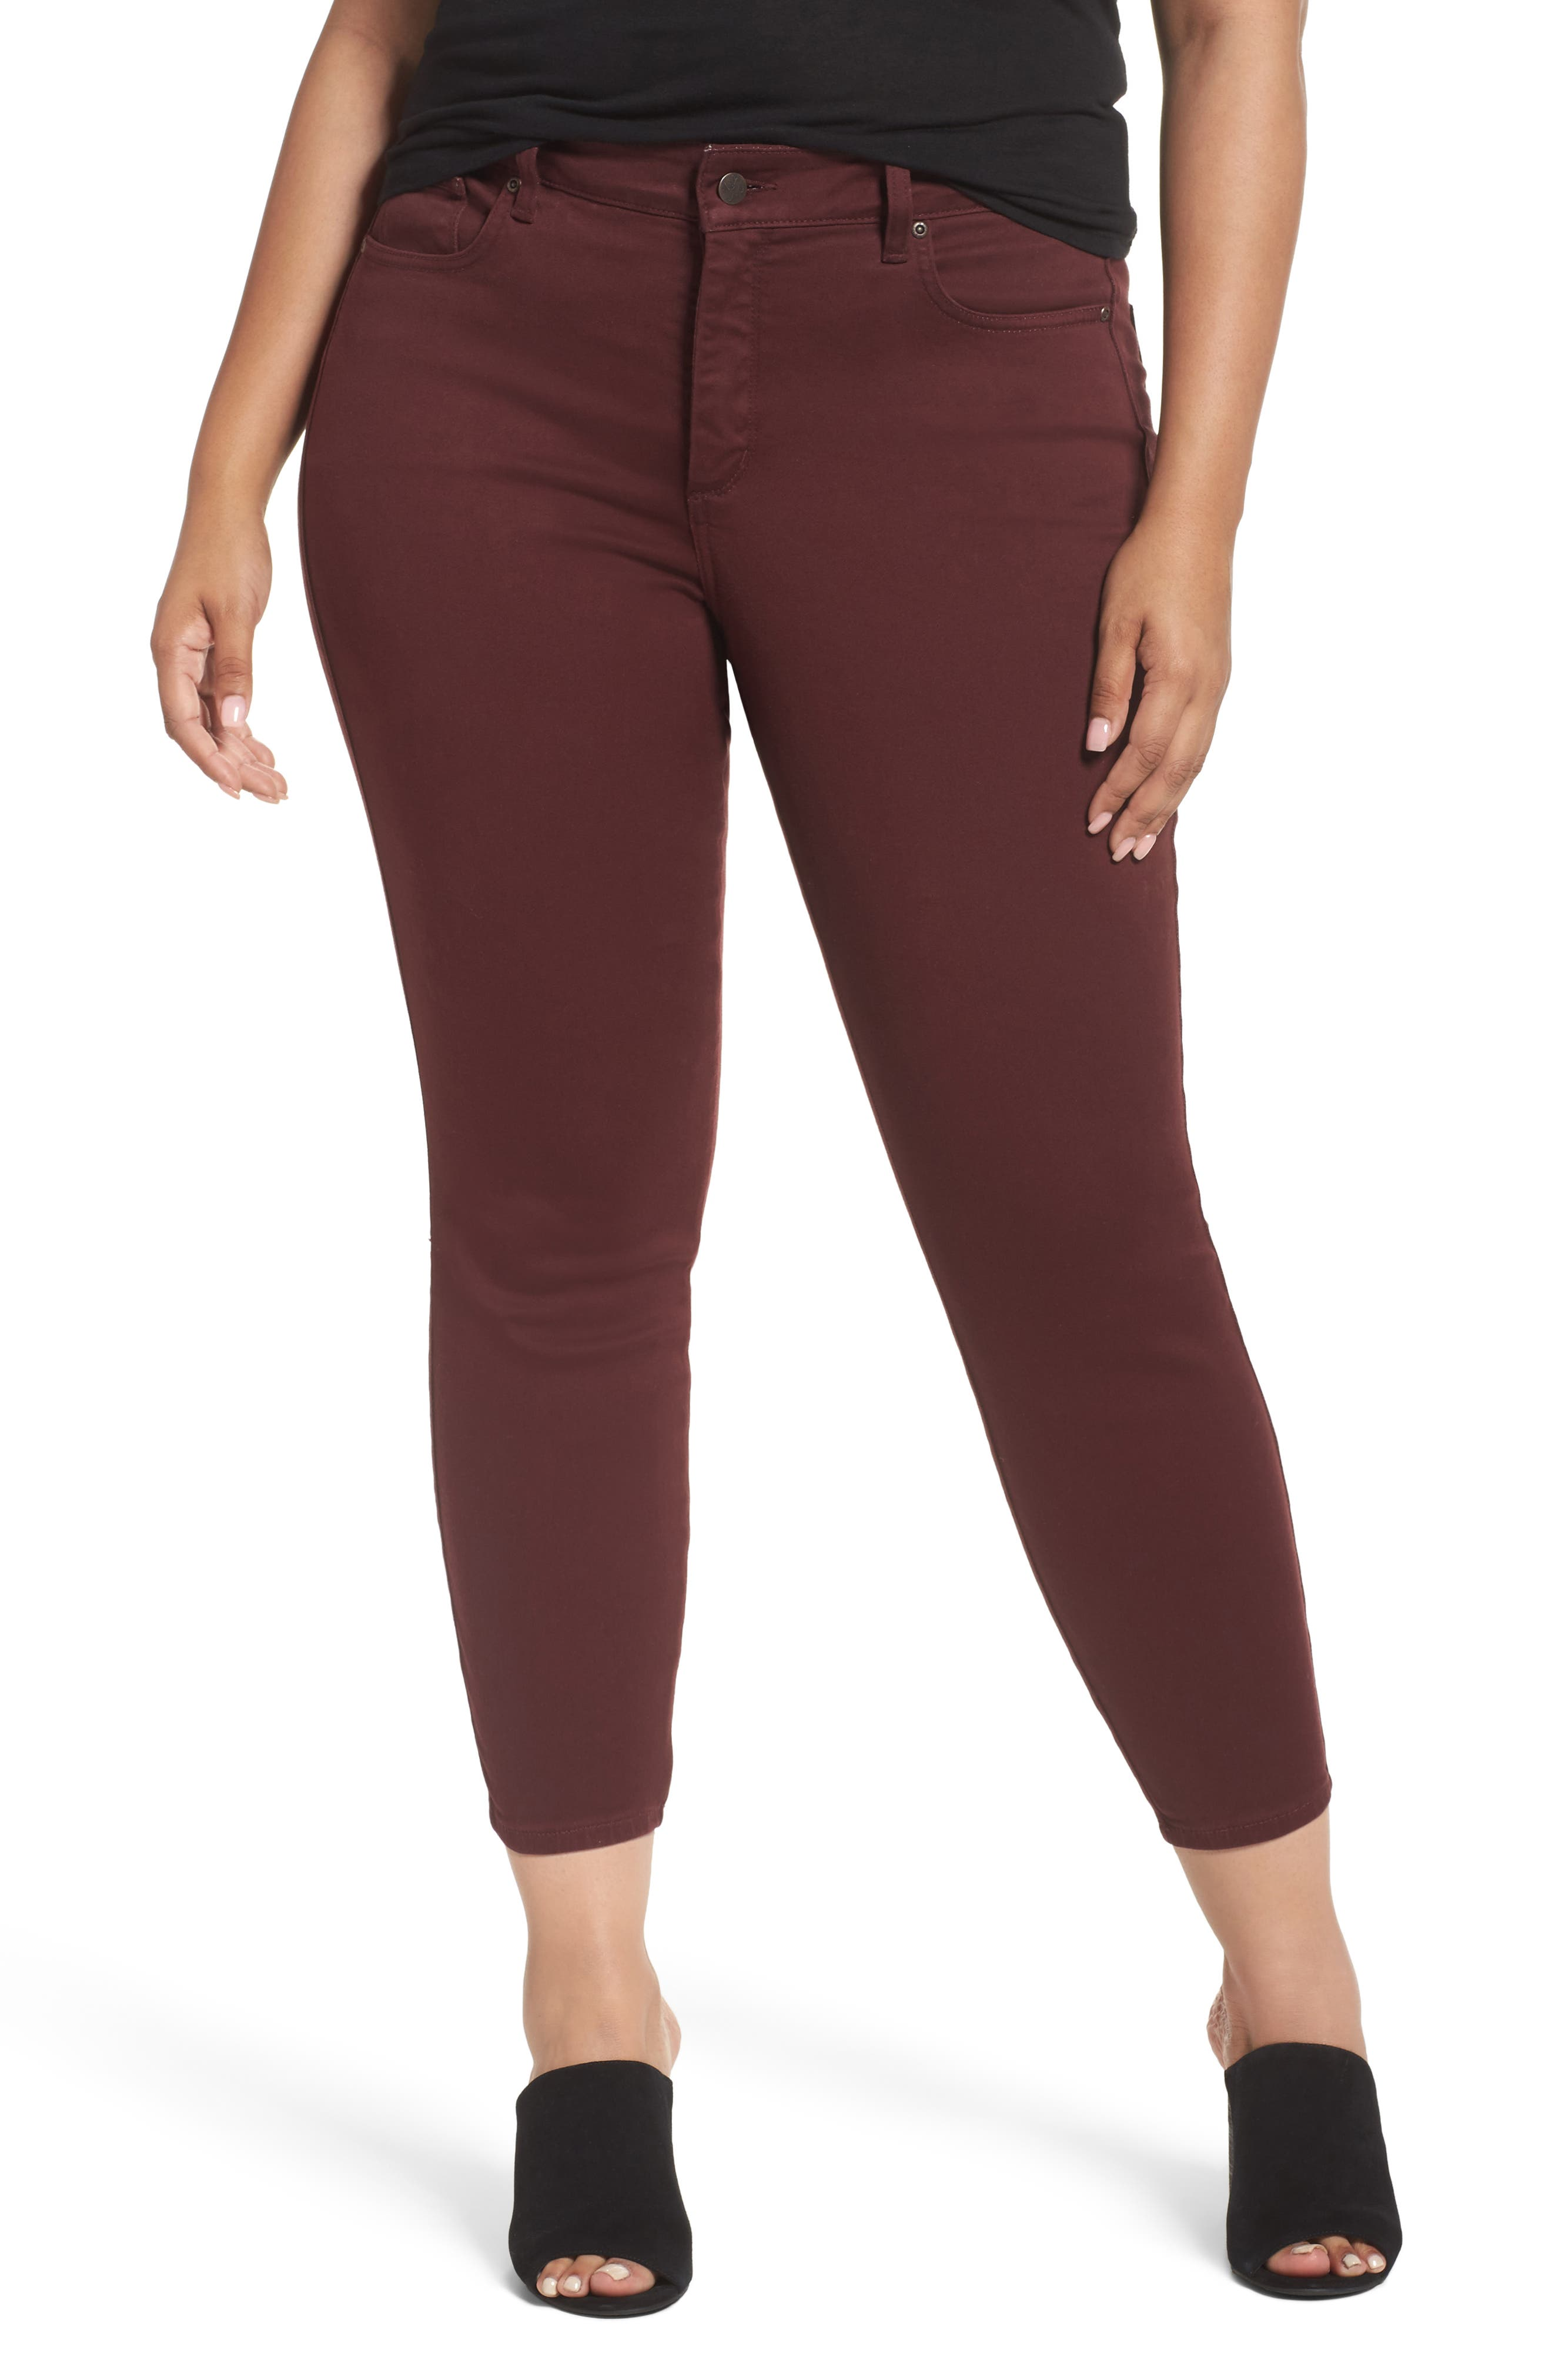 Alternate Image 1 Selected - NYDJ Ami Stretch Skinny Jeans (Plus Size) (Deep Currant)